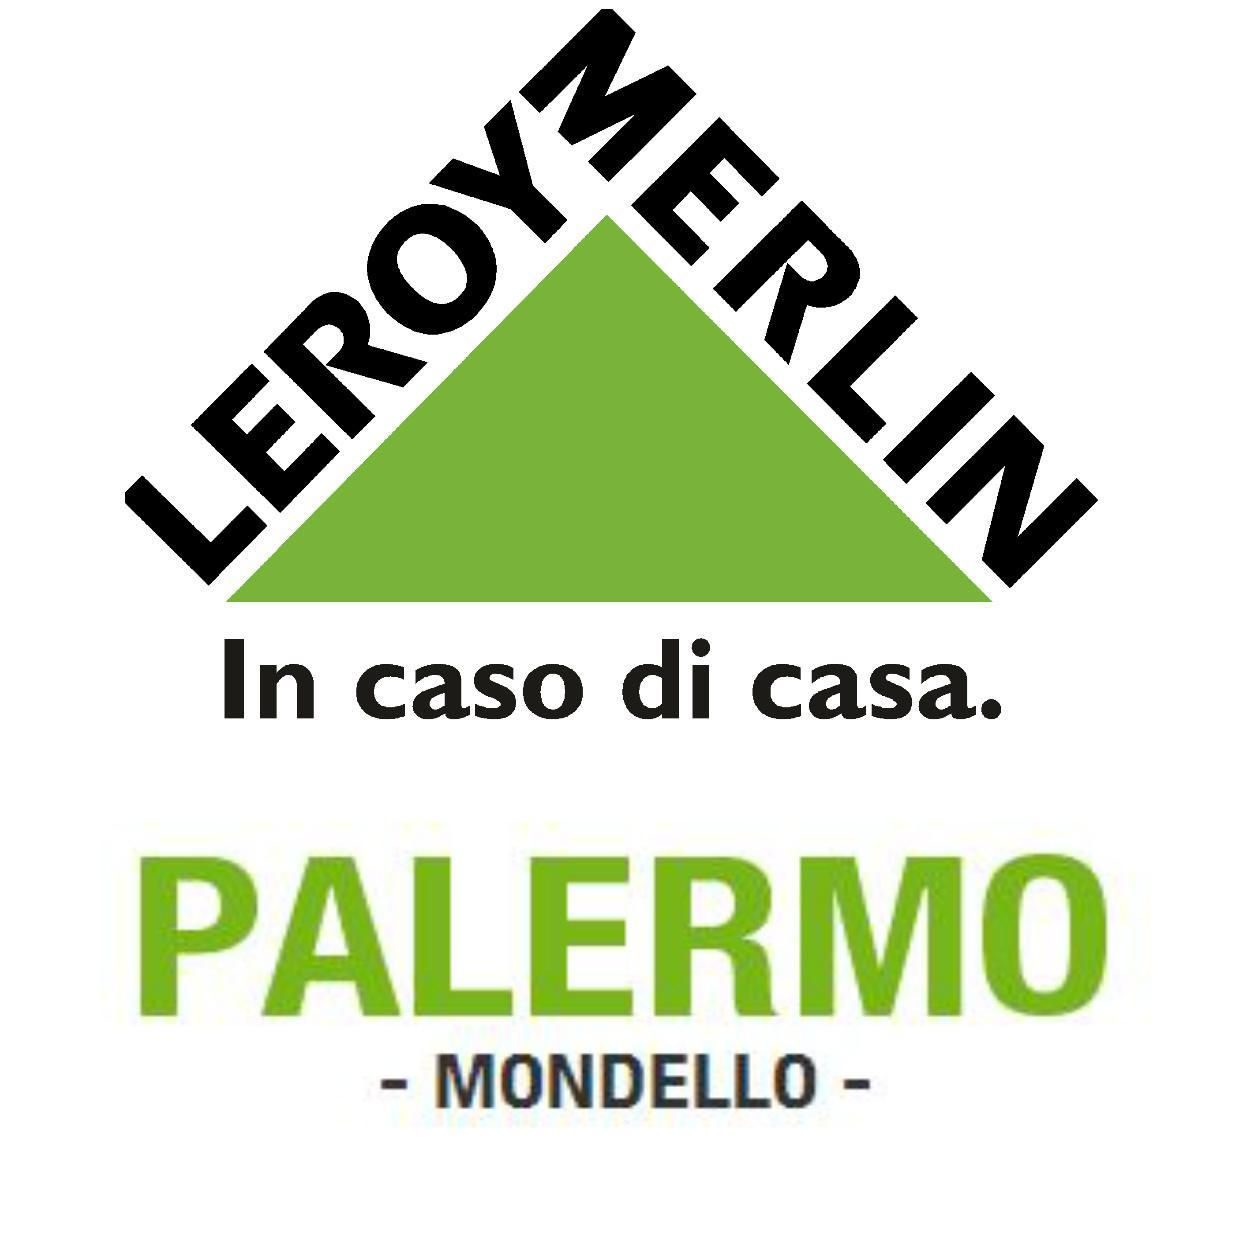 leroy merlin palermo lmpalermondello twitter. Black Bedroom Furniture Sets. Home Design Ideas